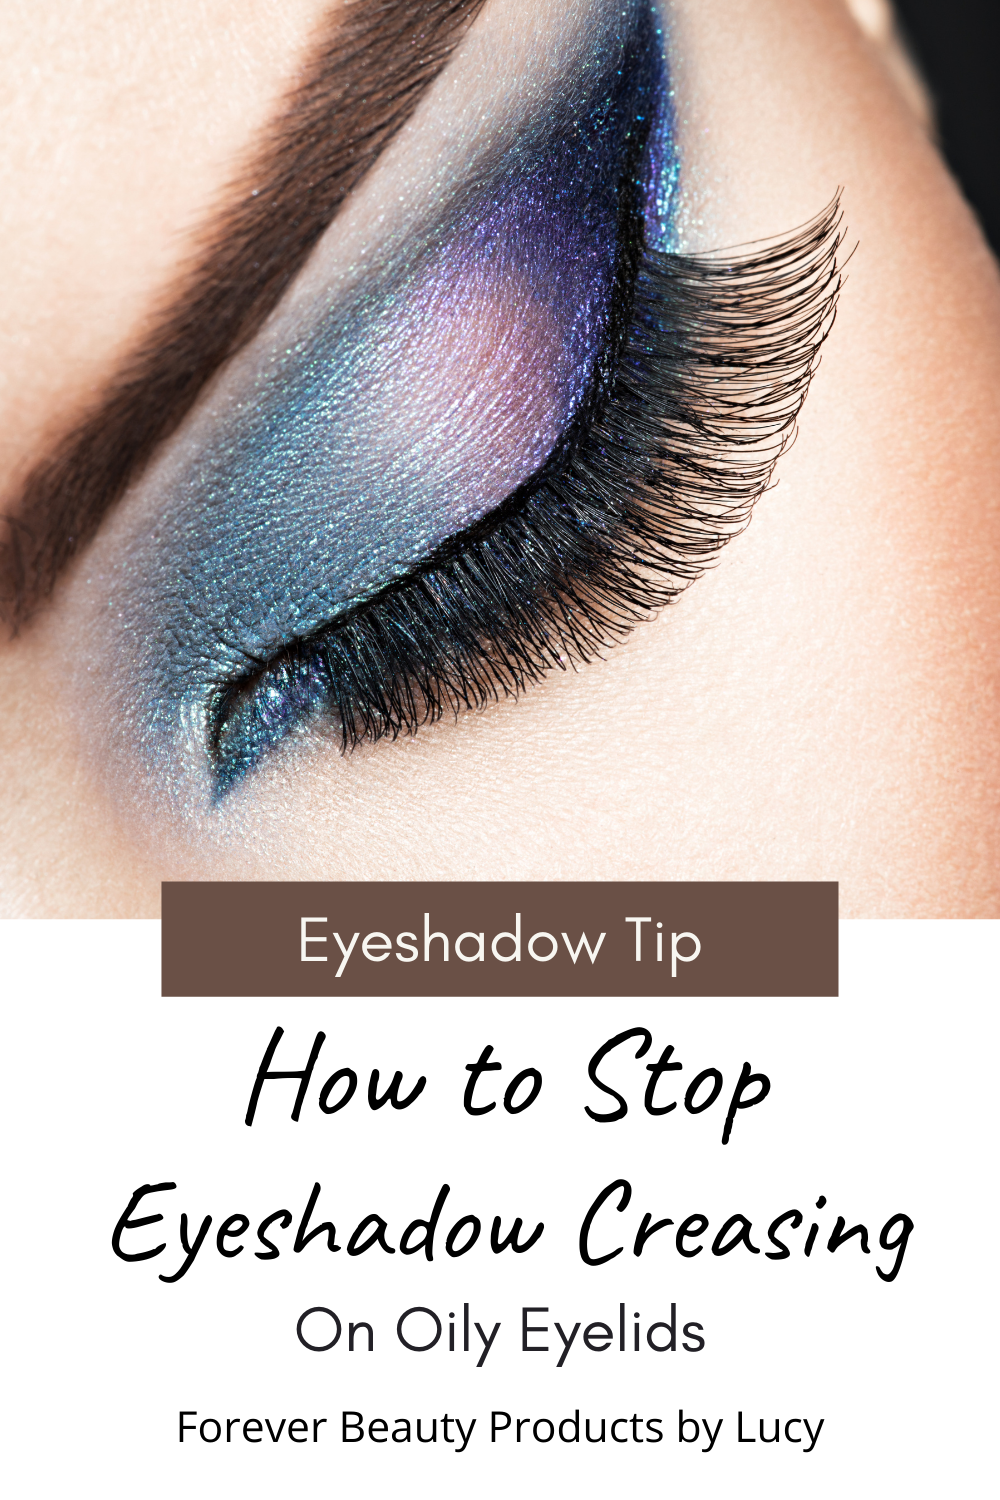 Prevent Eye Shadow Creasing on Oily Eyelids